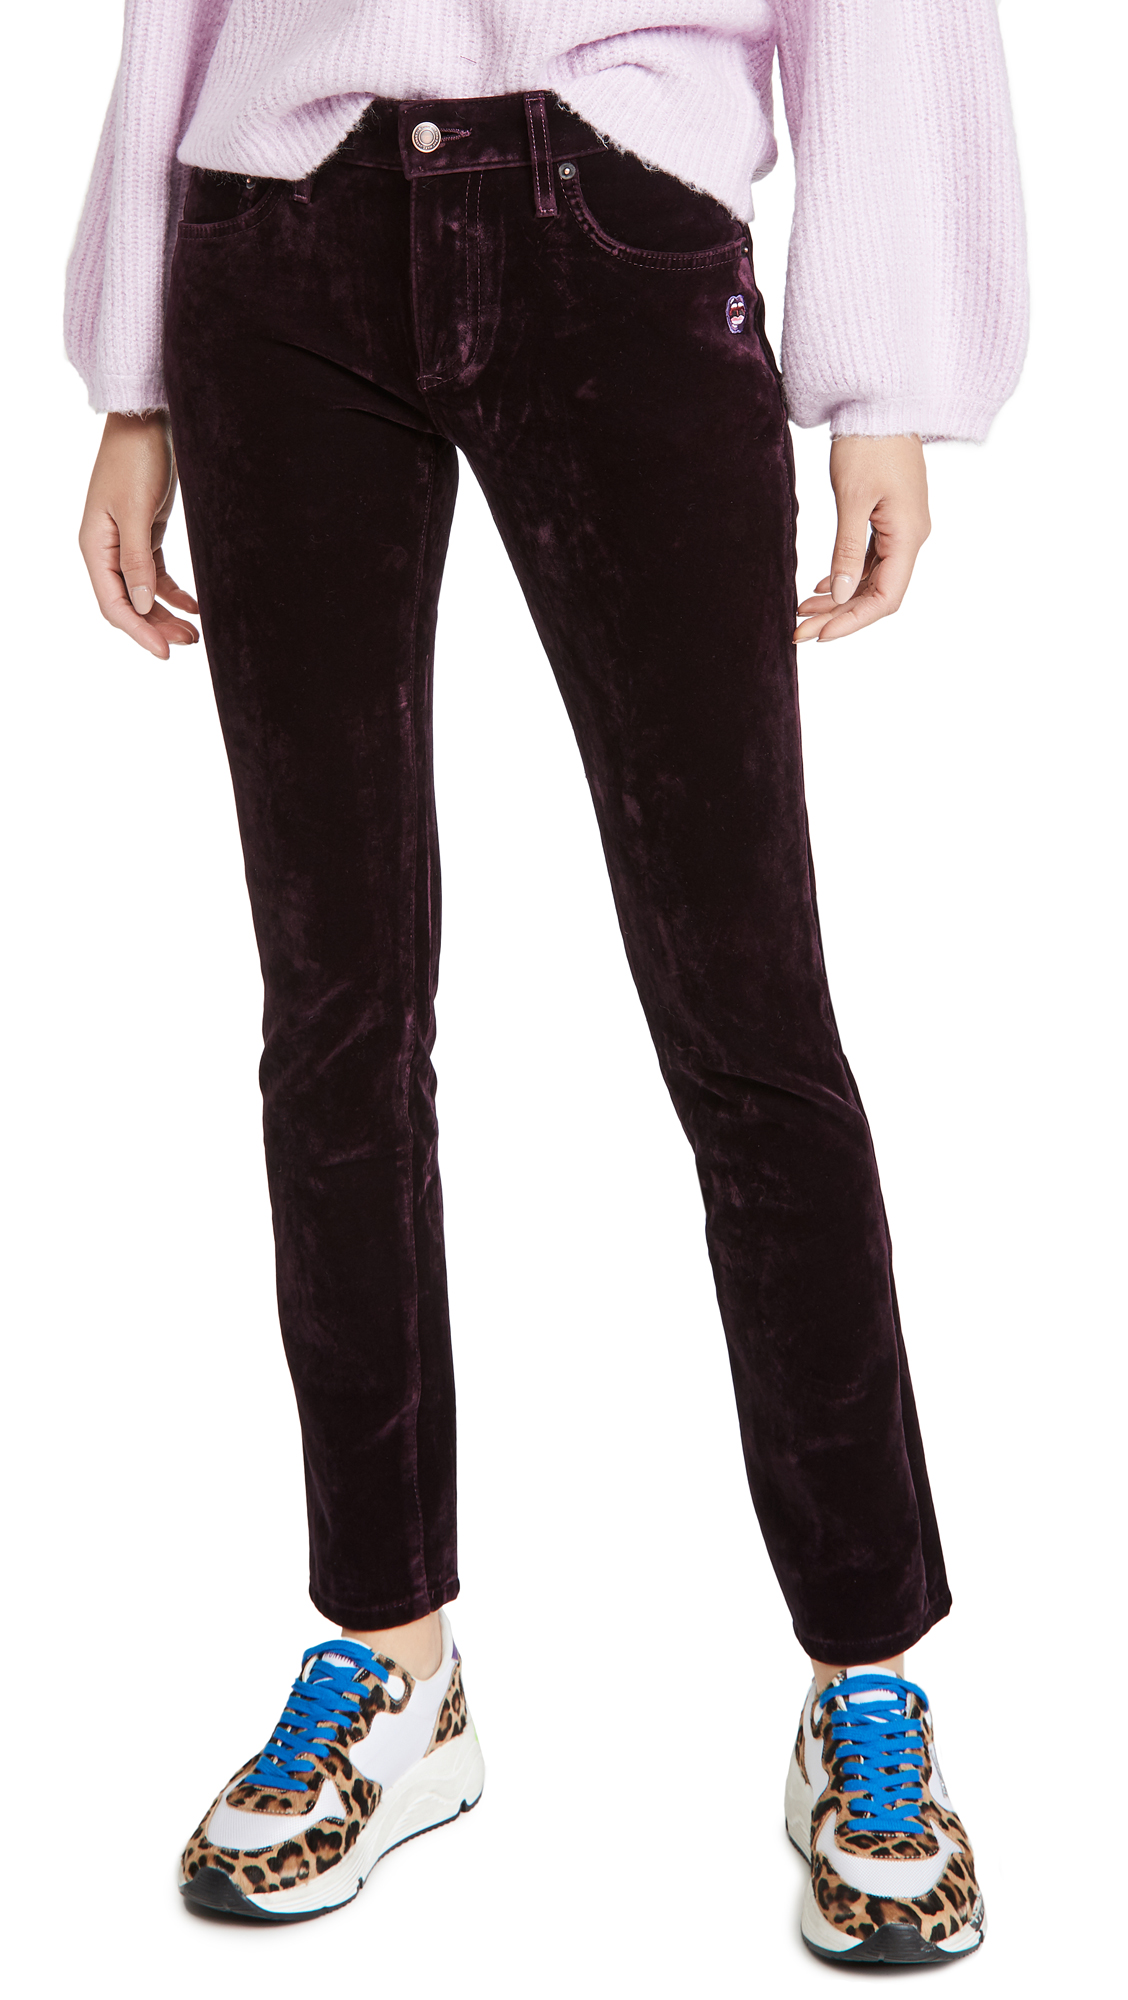 The Marc Jacobs The Ultra Skinny Jeans